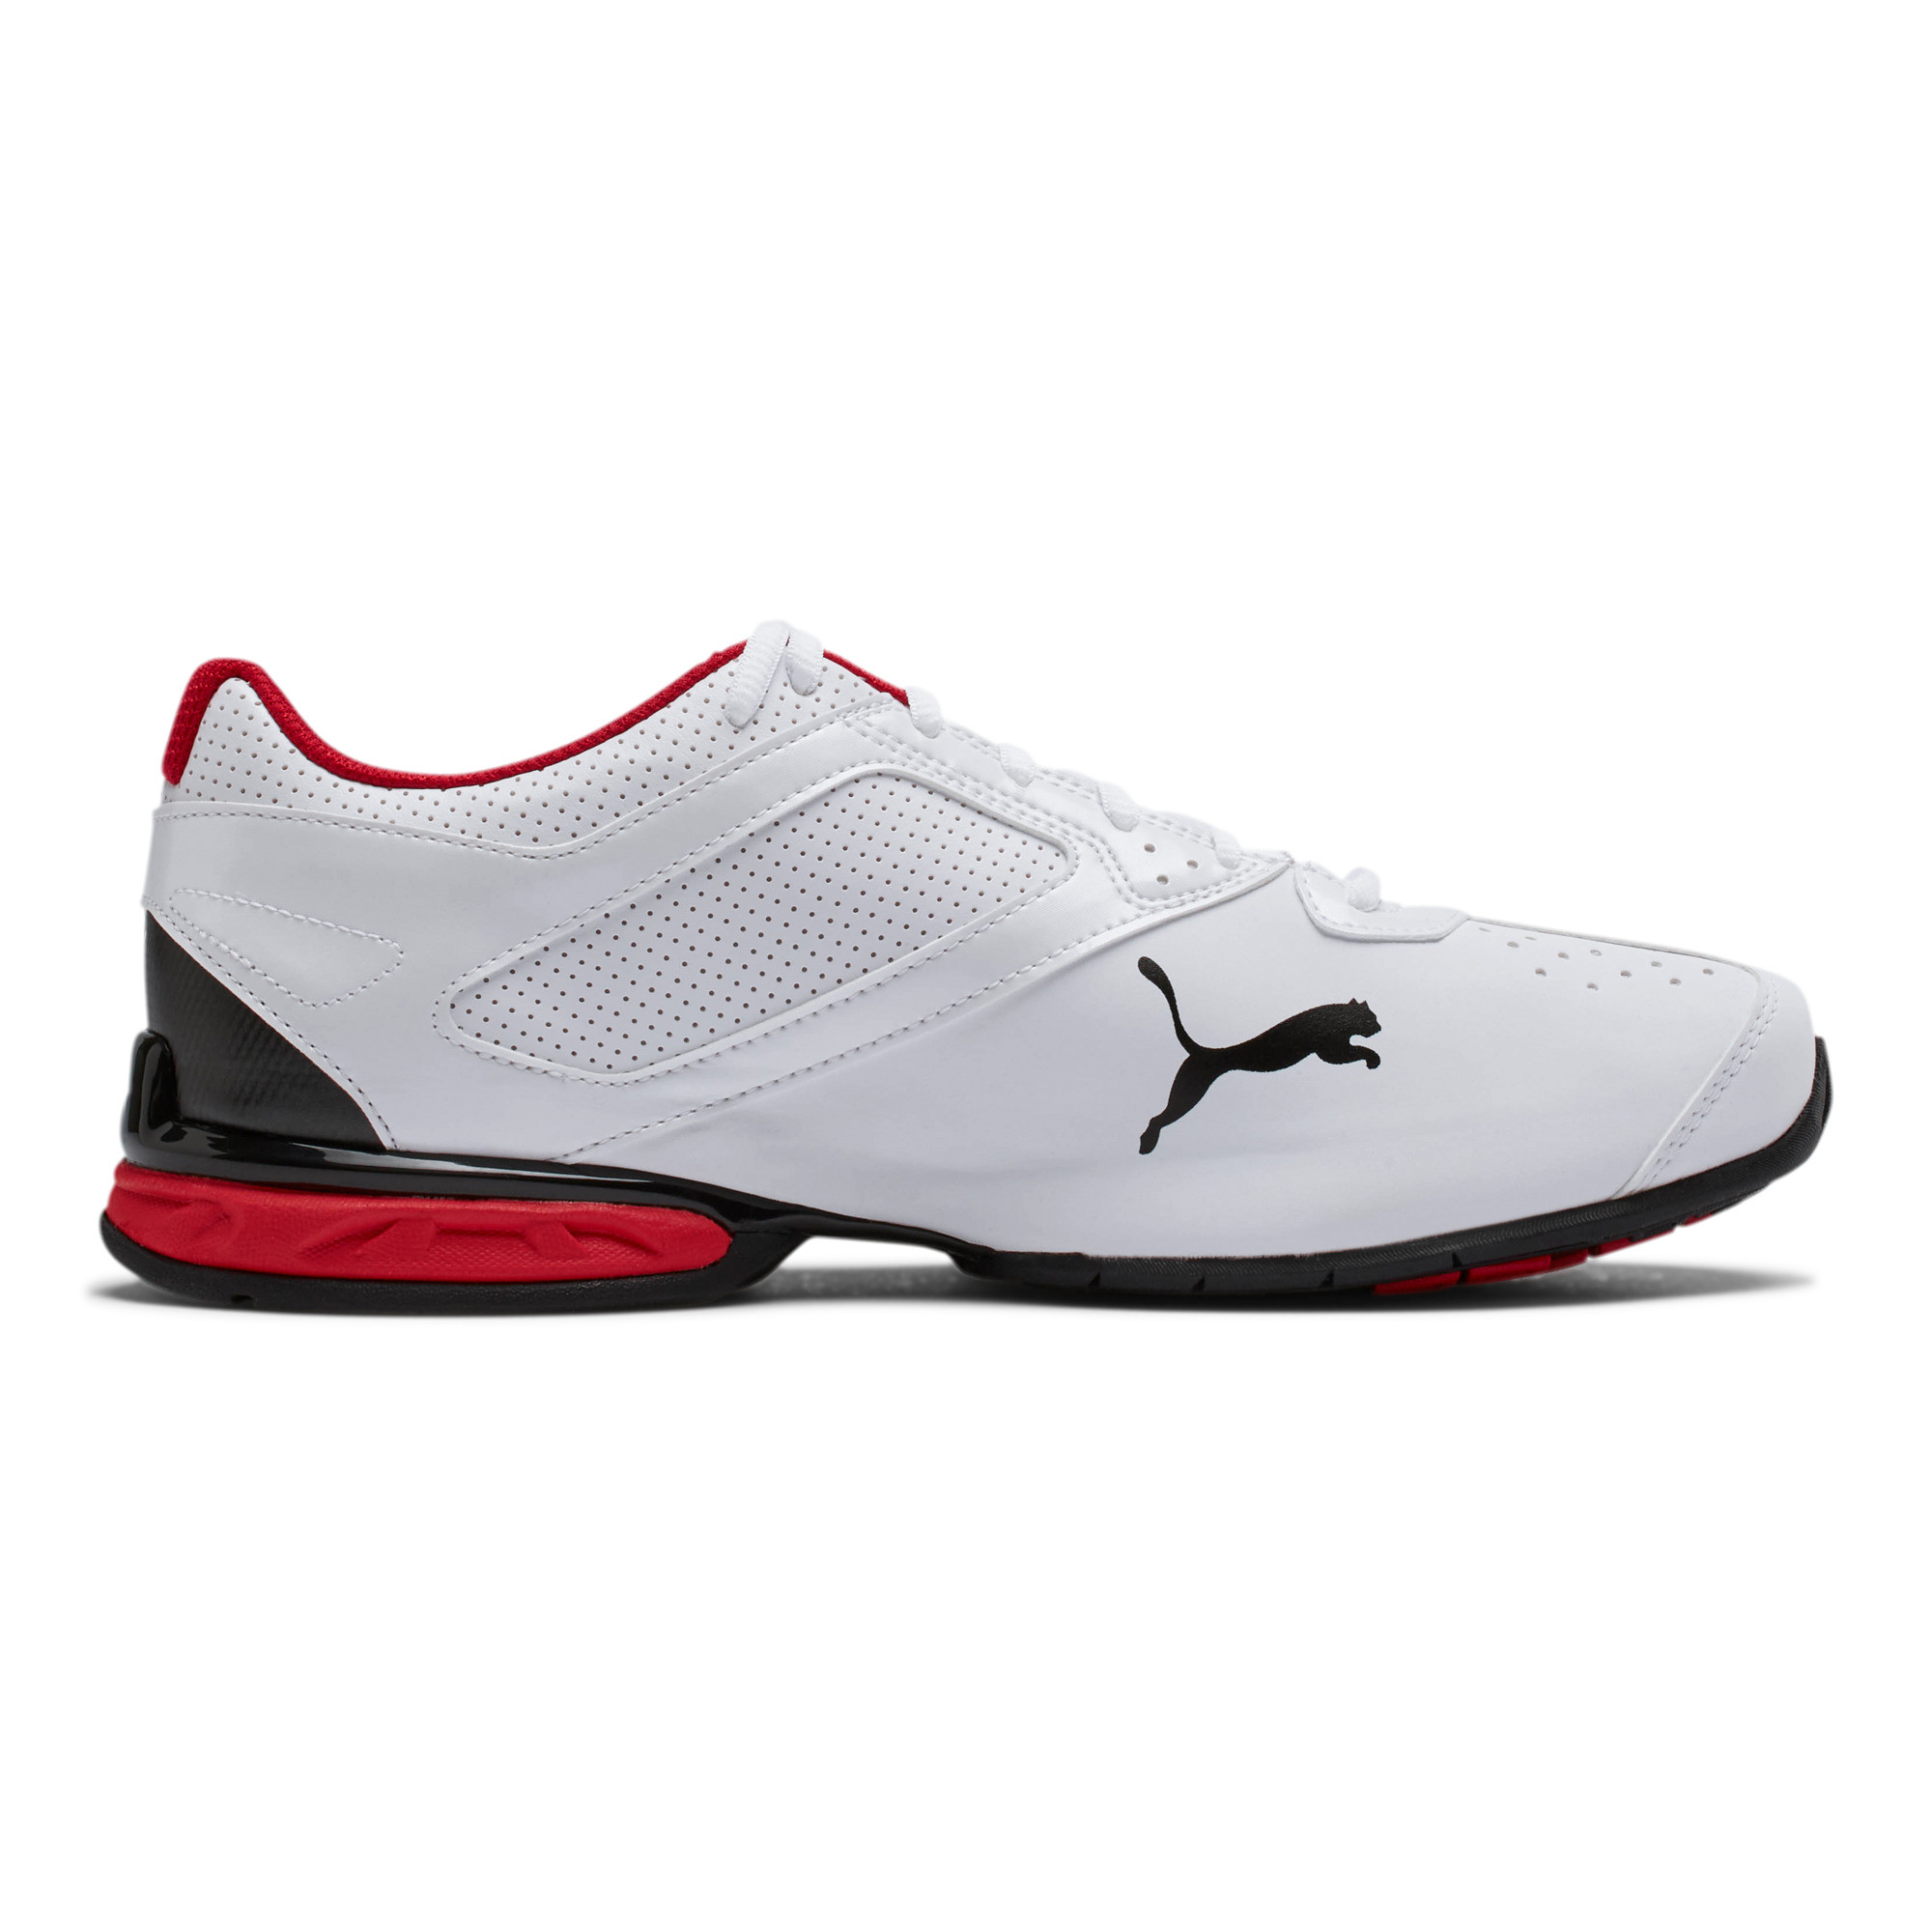 PUMA-Tazon-6-FM-Men-039-s-Sneakers-Men-Shoe-Running thumbnail 16